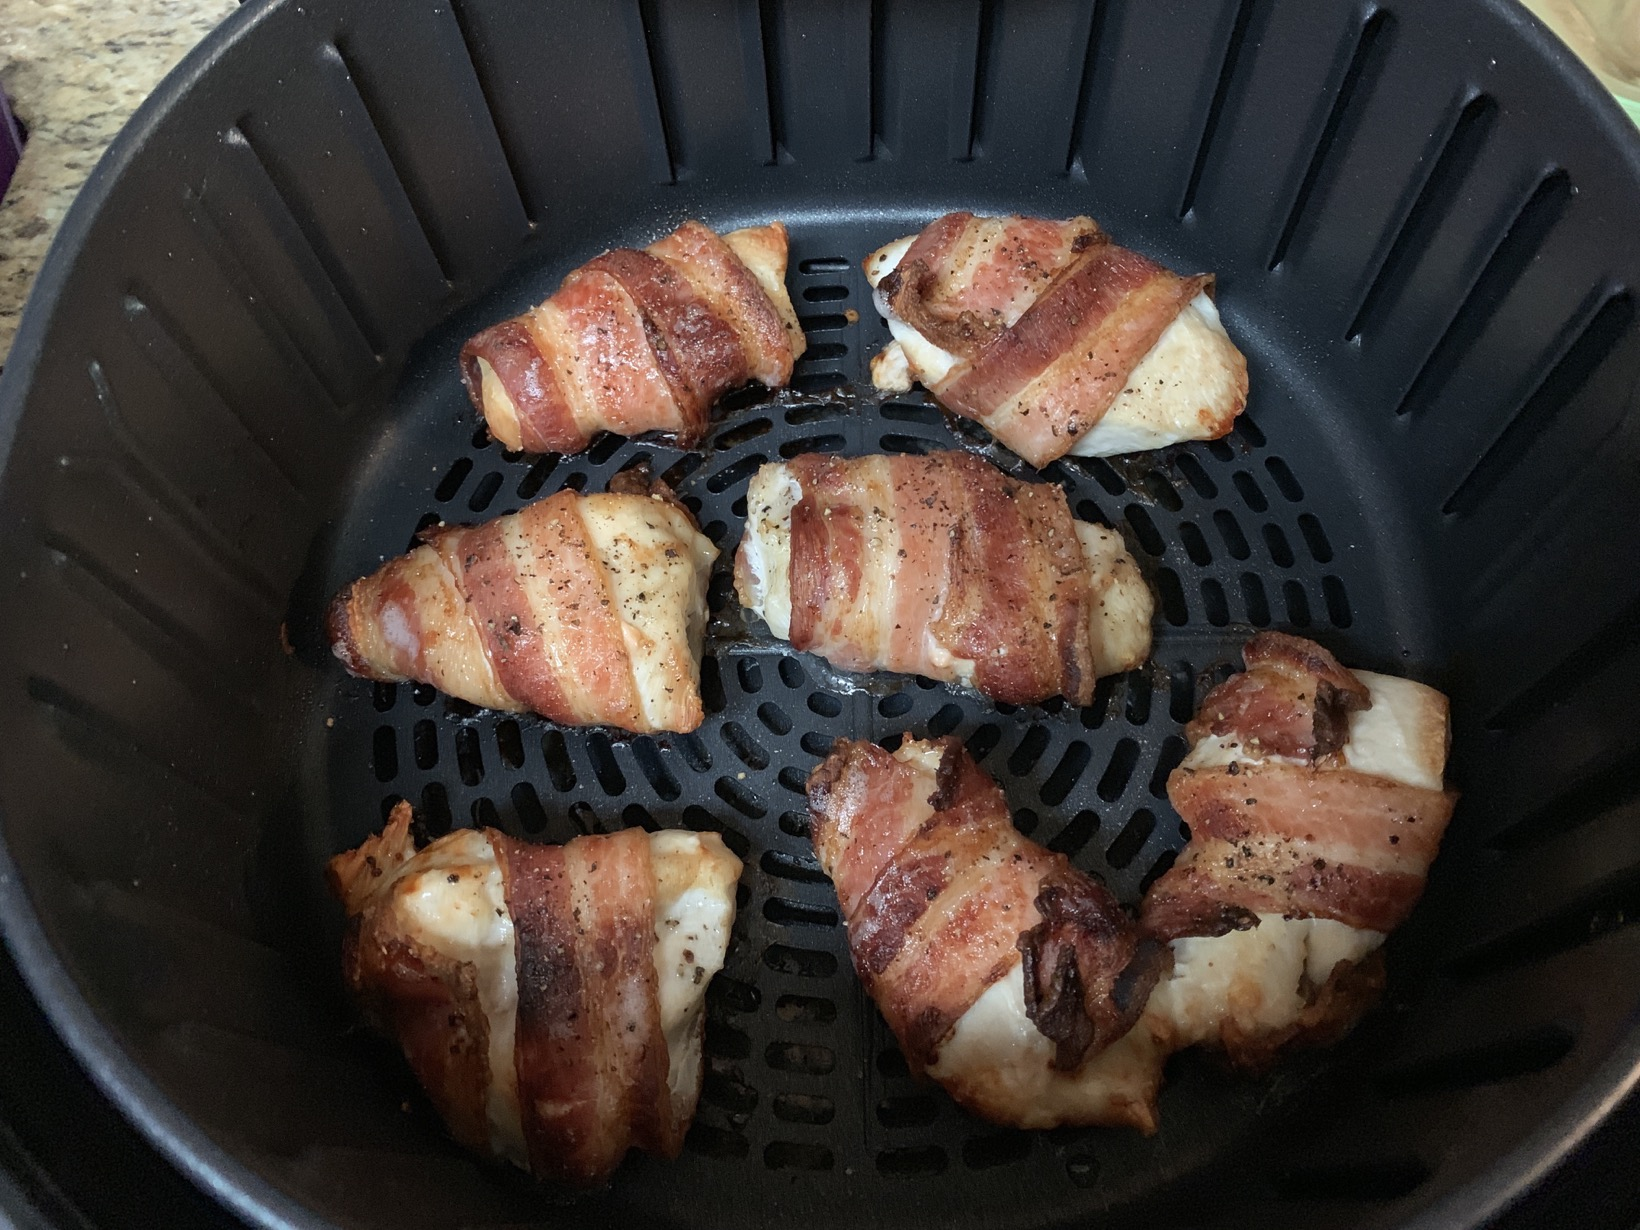 cooked bacon wrapped chicken in the newair air fryer